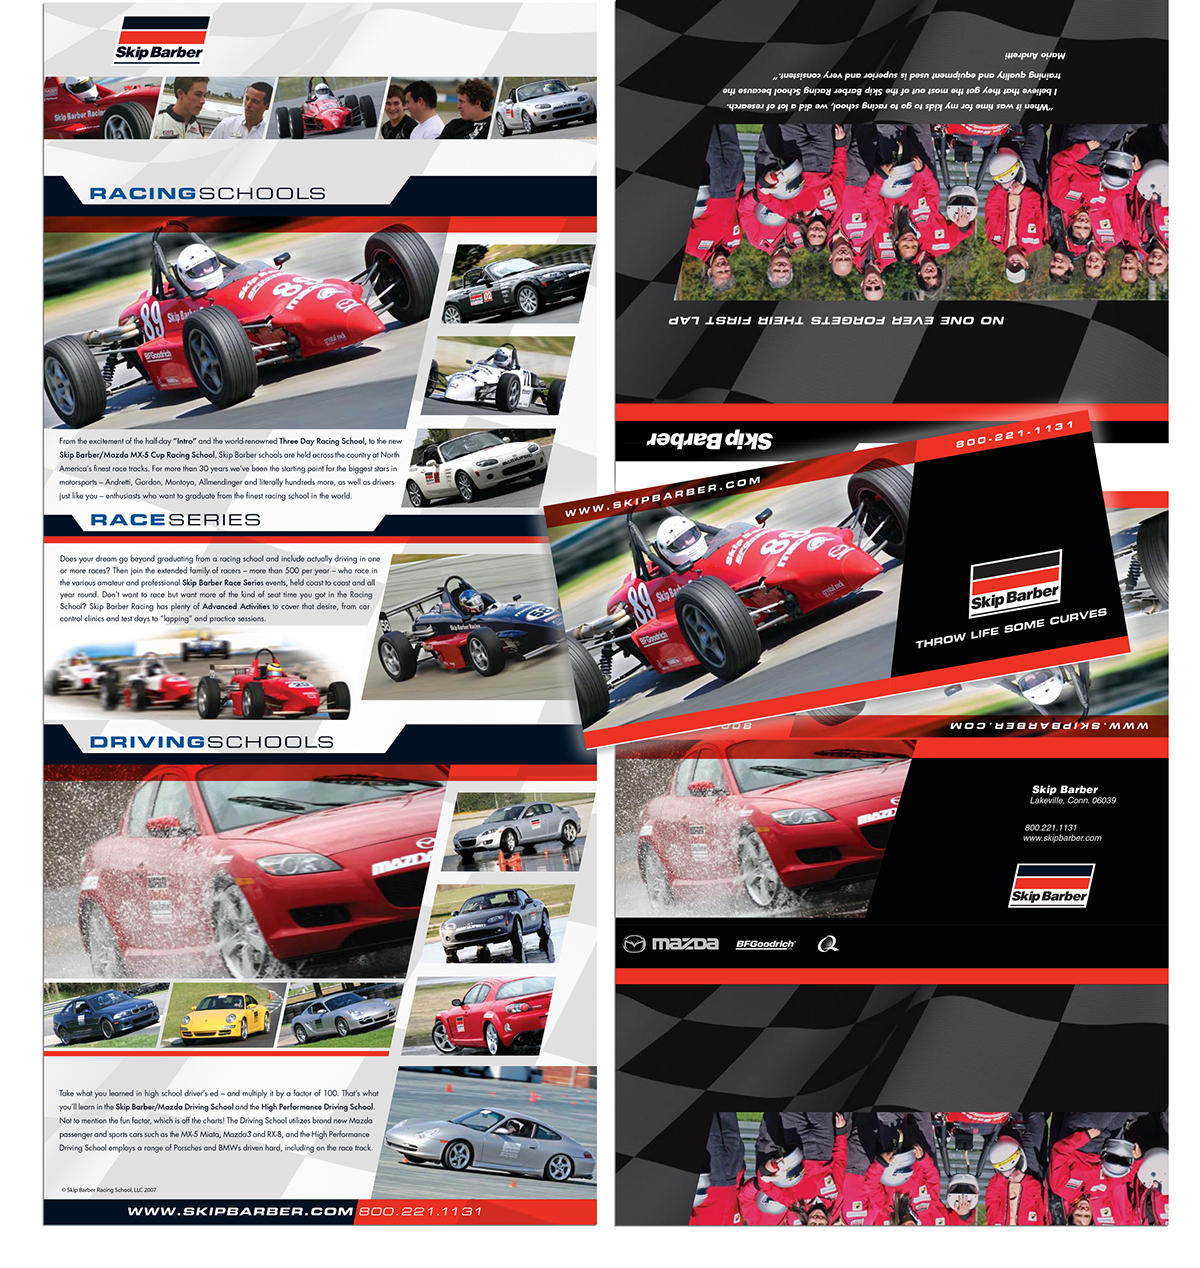 FERRARI & Skip Barber Racing School | Graphic Design